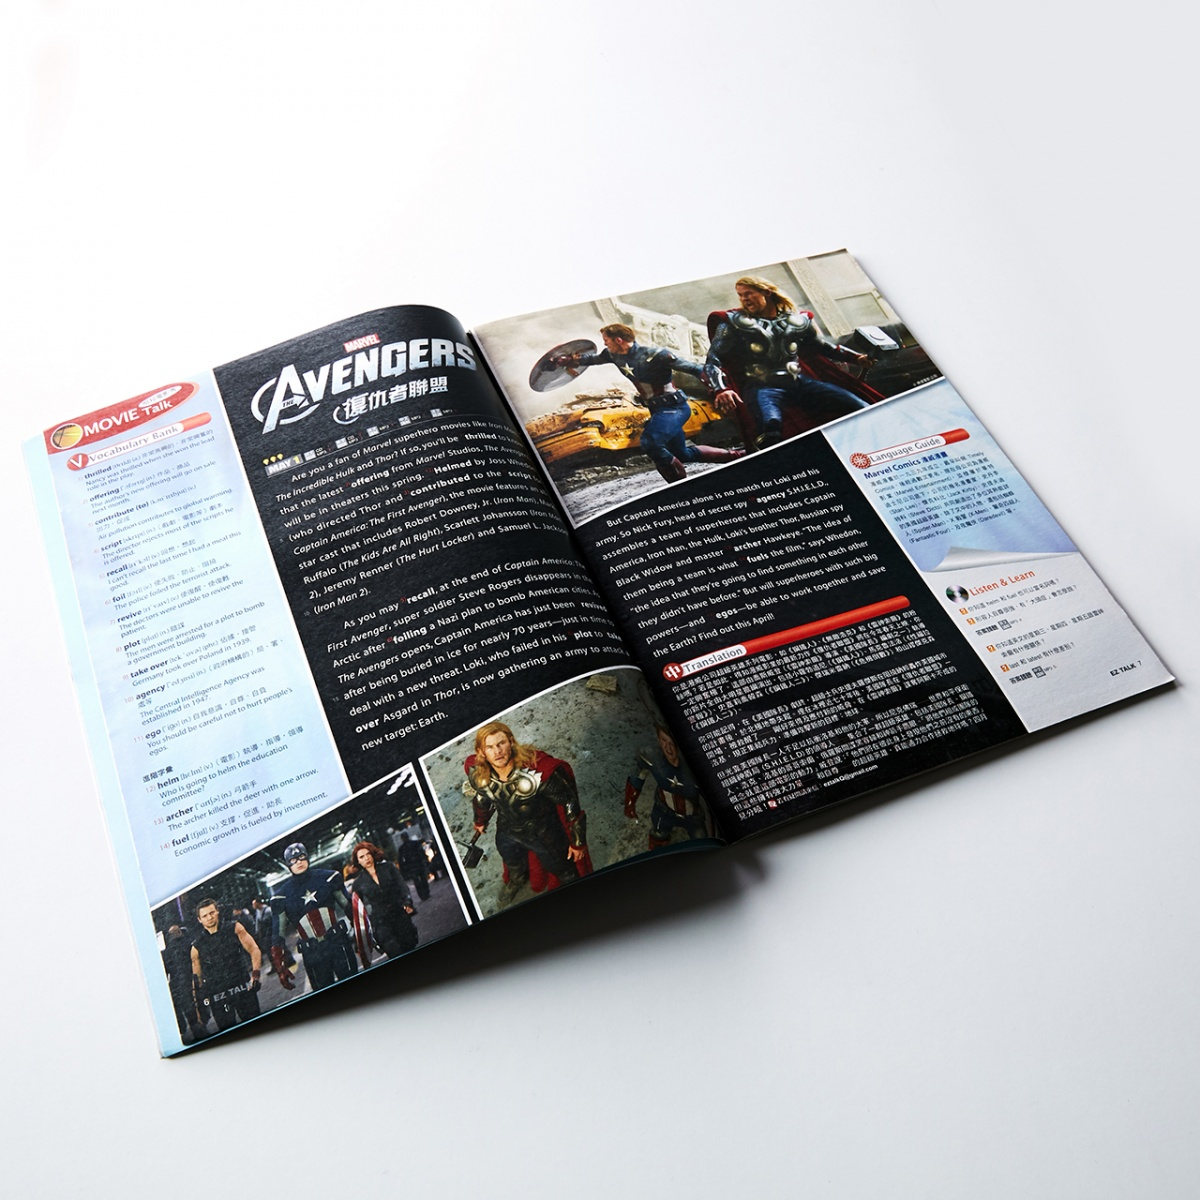 Marvel Avengers movies cover story layout design on magazine public in Taiwan in 2011